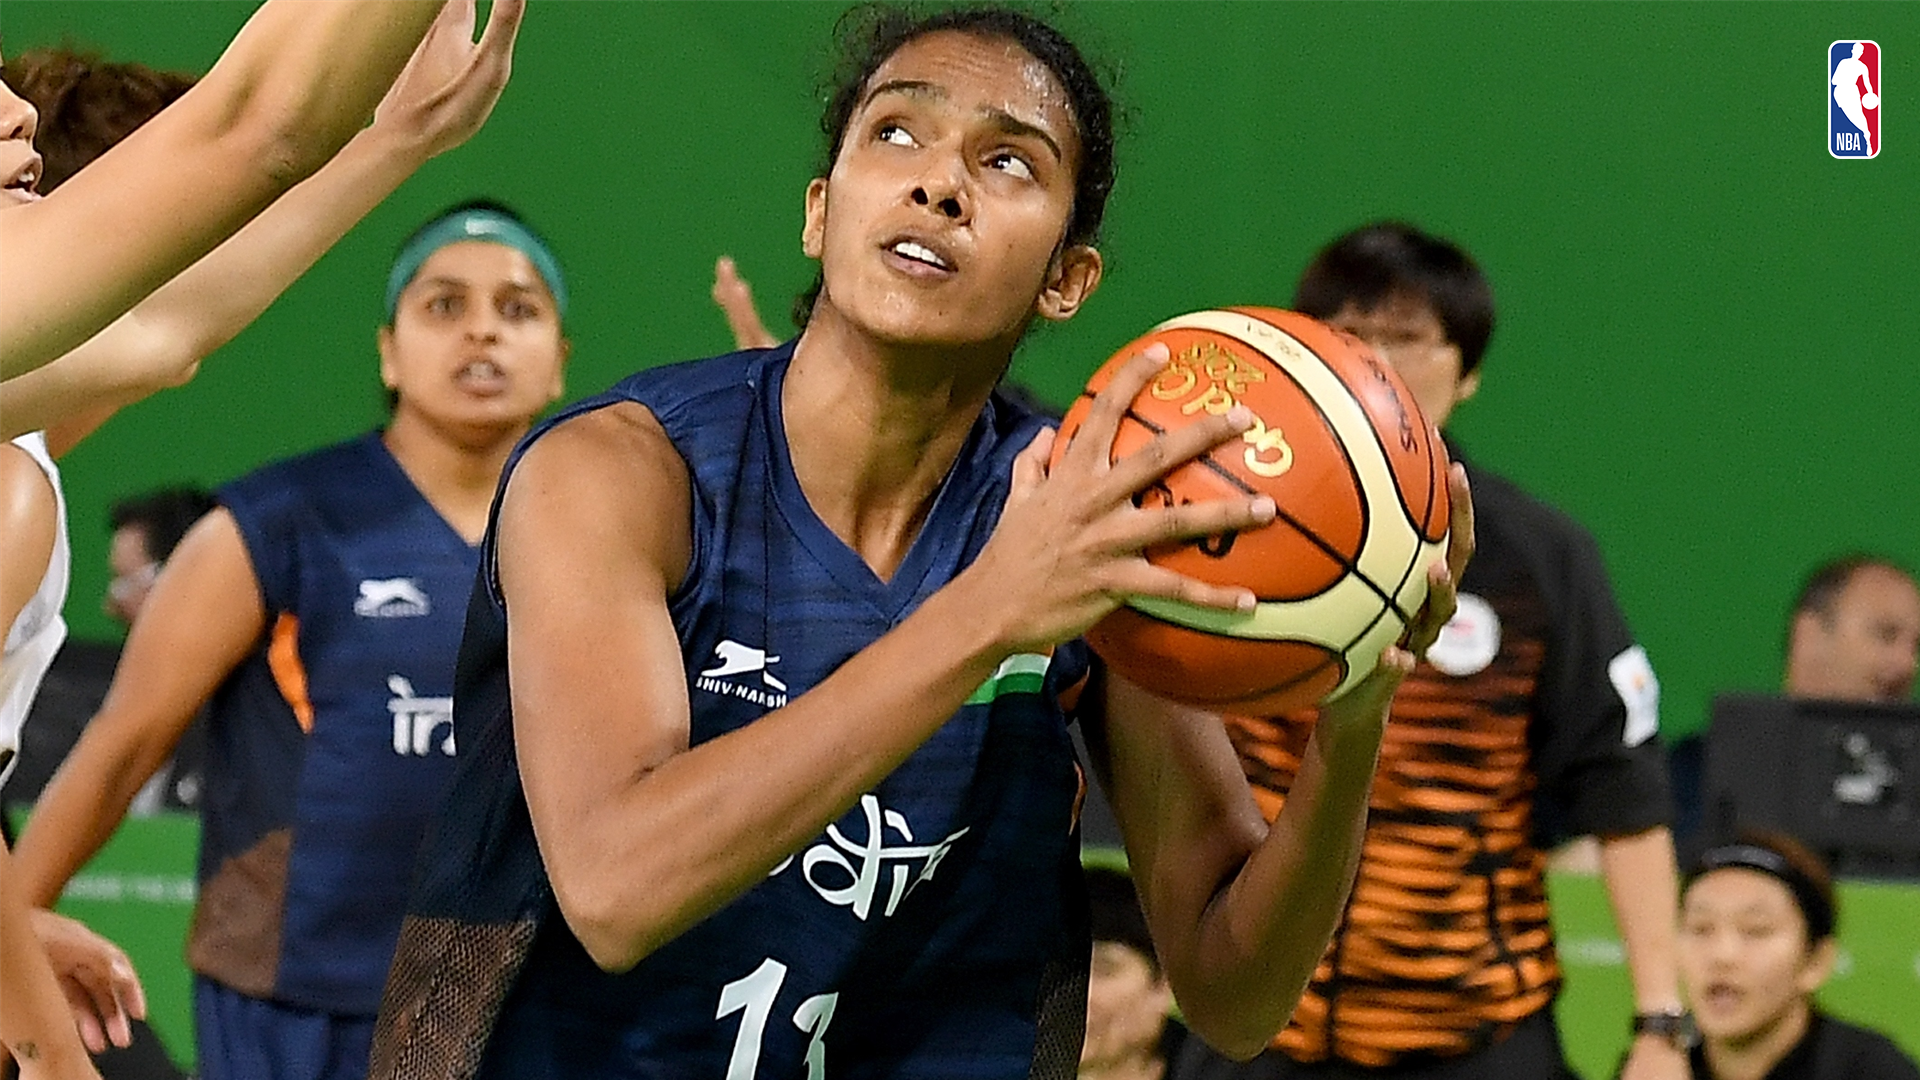 Indian Women S Team Captain Jeena Skaria Signs With Ringwood Lady Hawks In Australia Nba Com India The Official Site Of The Nba